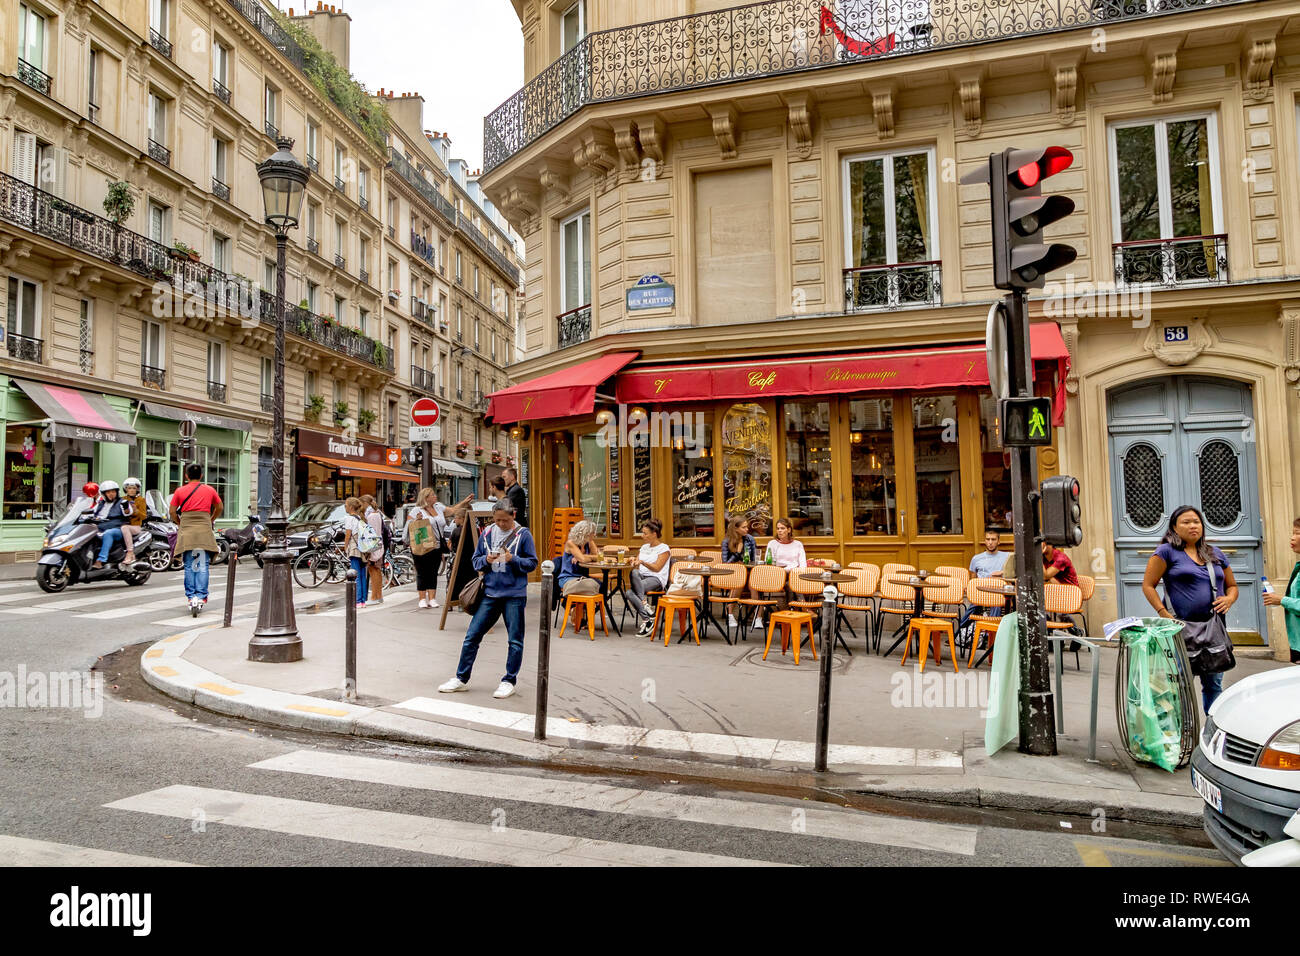 A woman looks at her mobile phone standing outside Le Ventura restaurant cafe on Rue des Martyrs in Monmartre in the 9th arrondissement of Paris - Stock Image